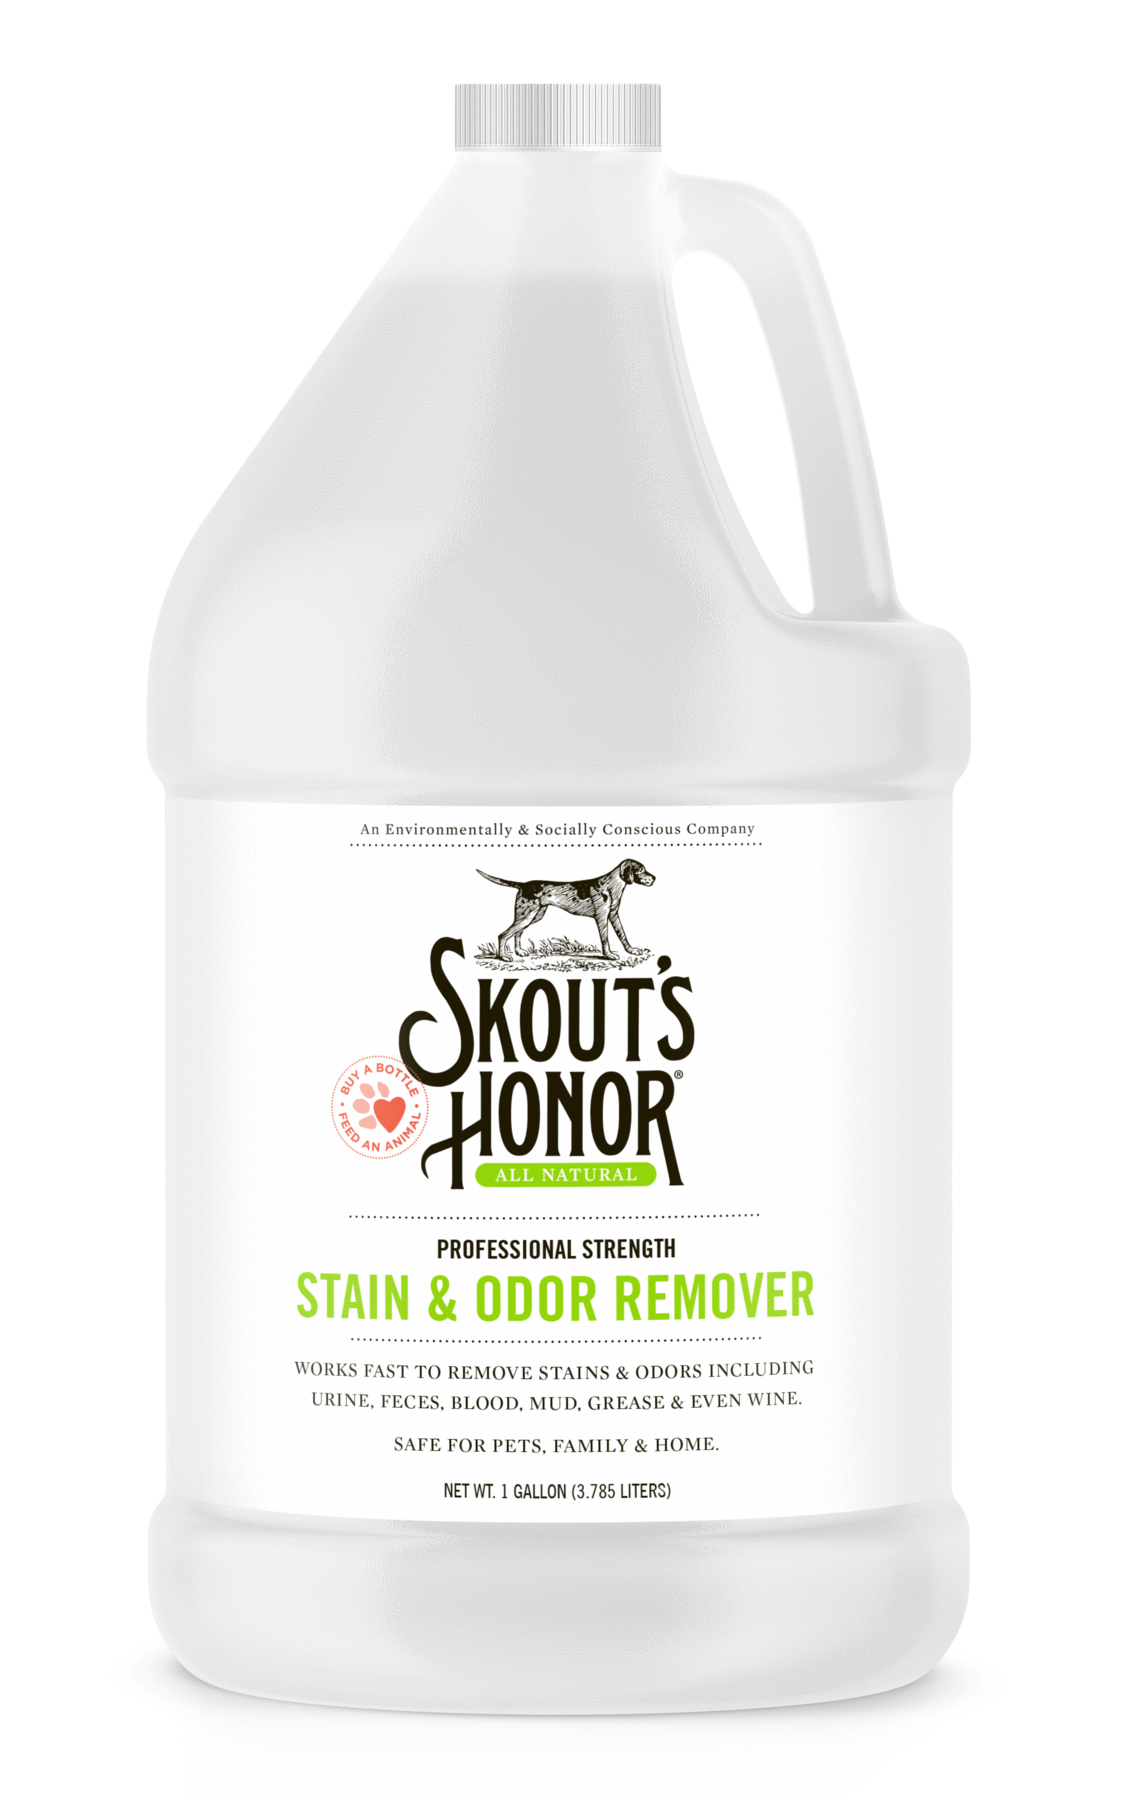 Skout's Honor Stain & Odor Remover Cleaning Spray